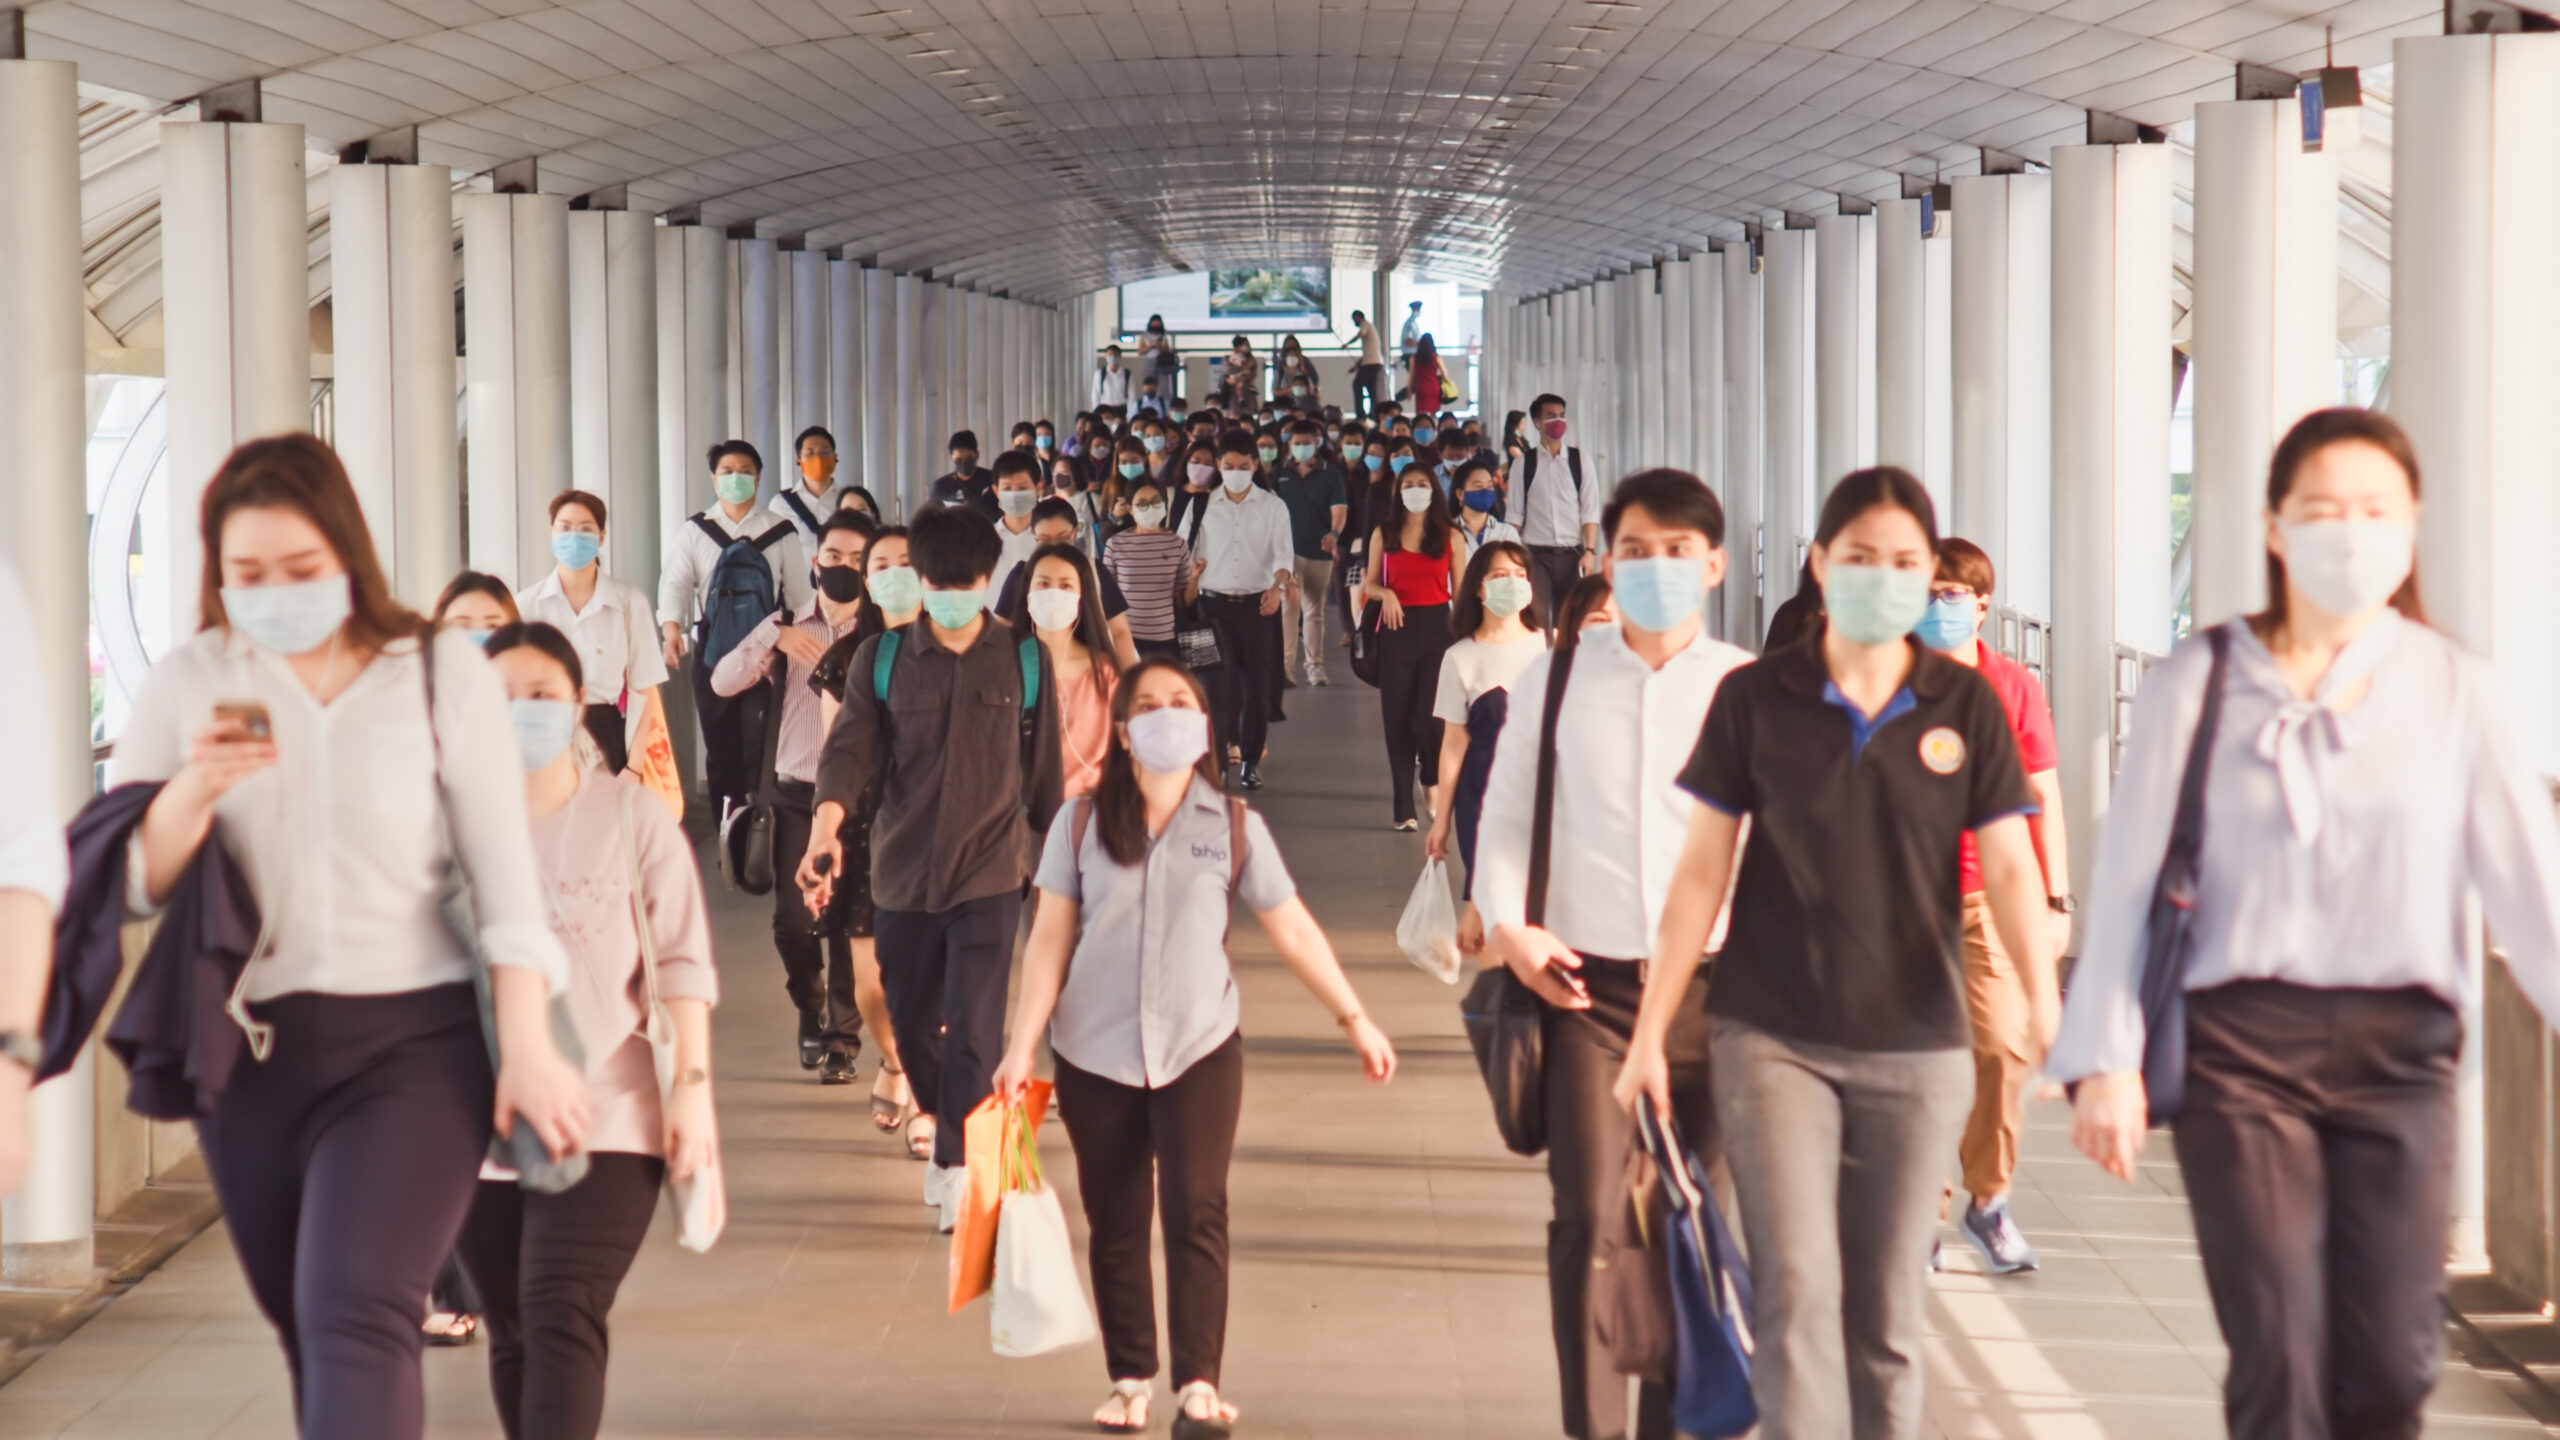 asiand leaving a train station and wearing masks